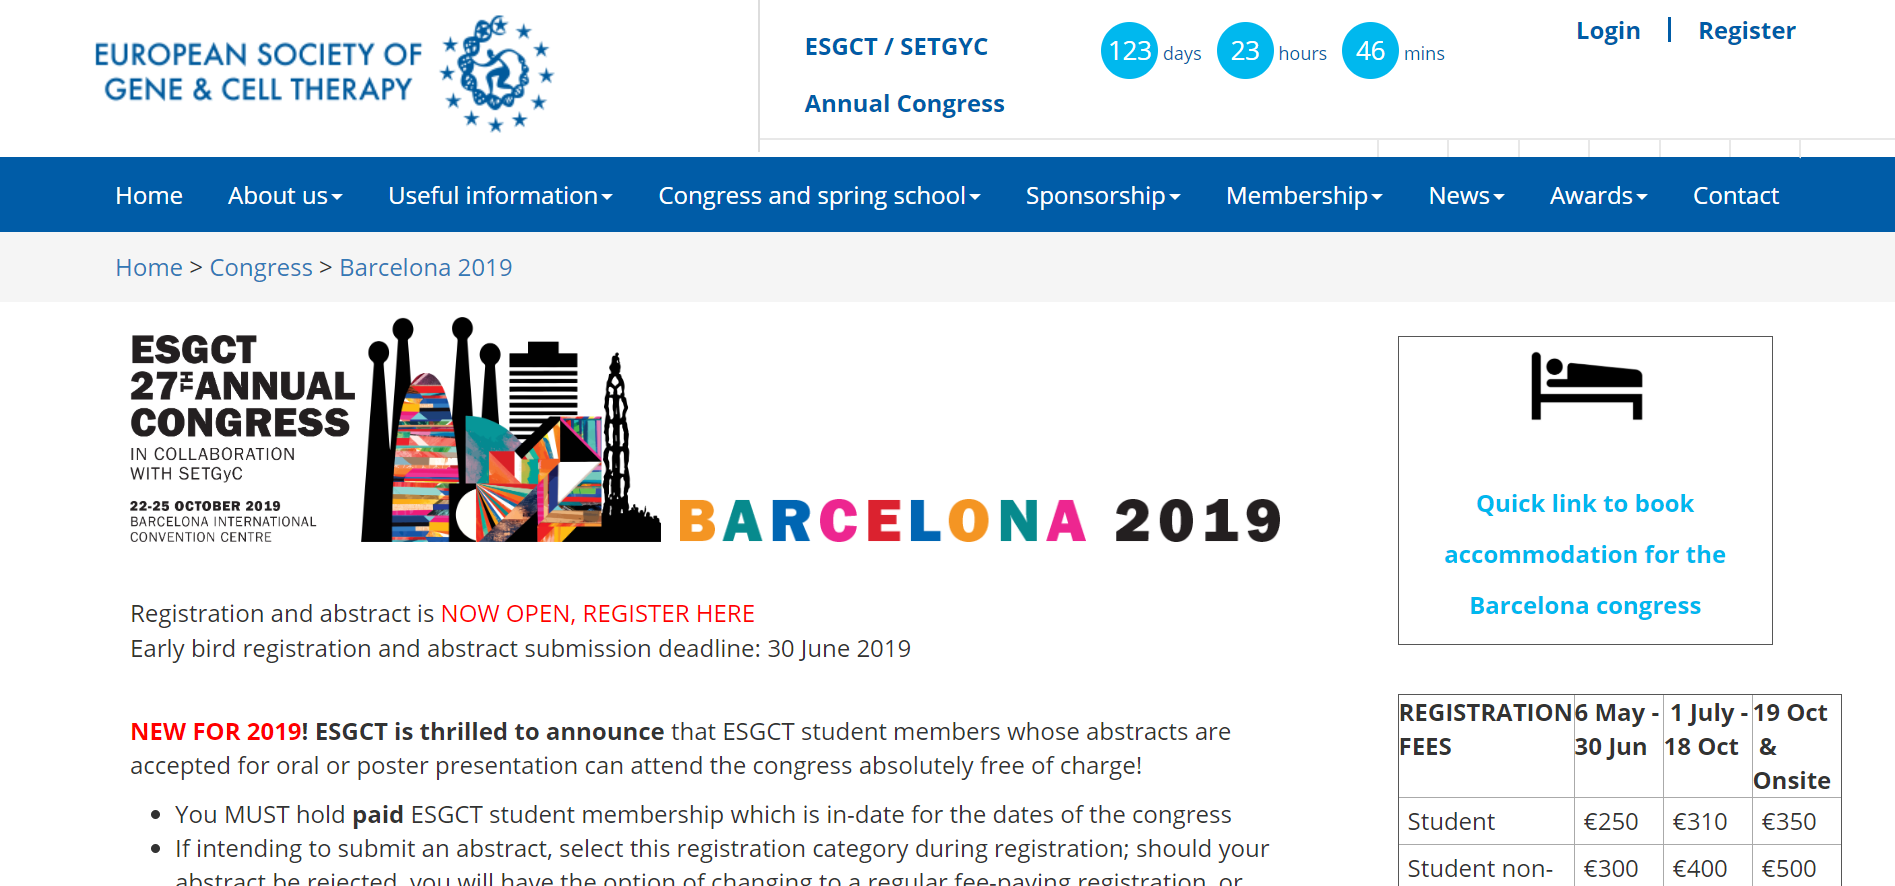 Annual Congress of the European Society of Gene and Cell Therapy